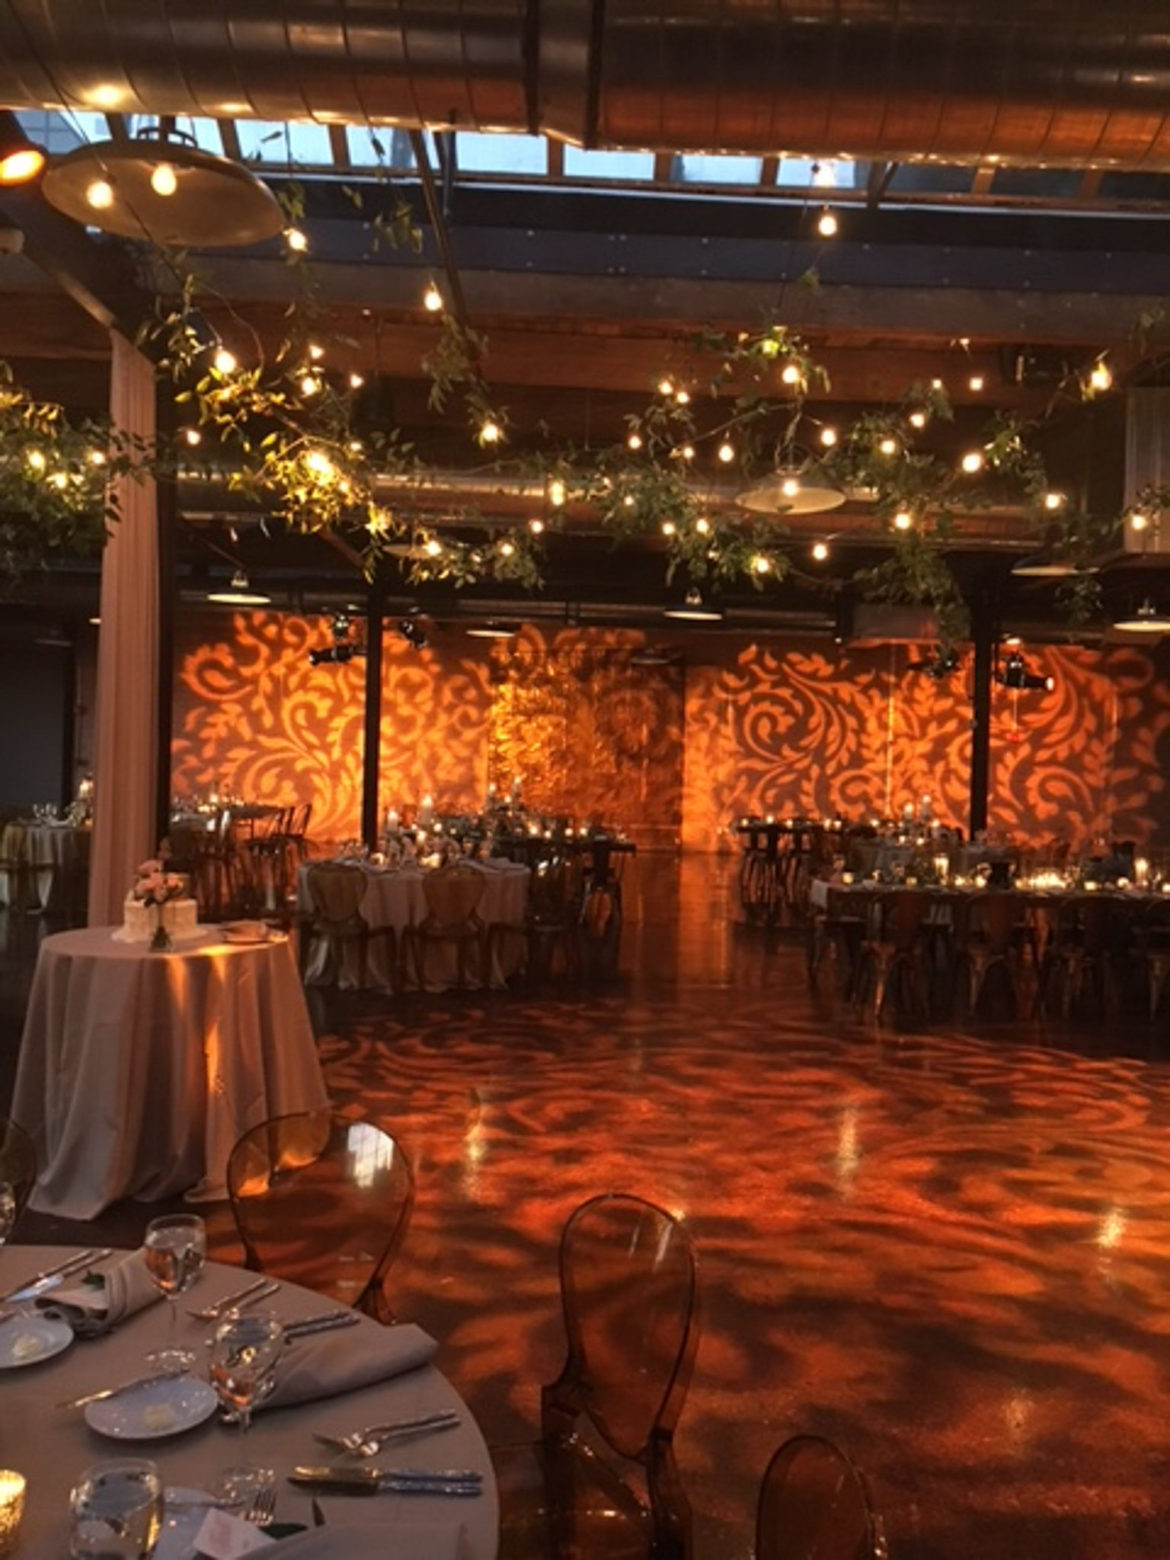 Elegant_Event_Lighting_Chicago_Morgan_Manufacturing_Wedding_Amber_Uplighting_Pattern_Lighting_Cafe_Globe_Lighting